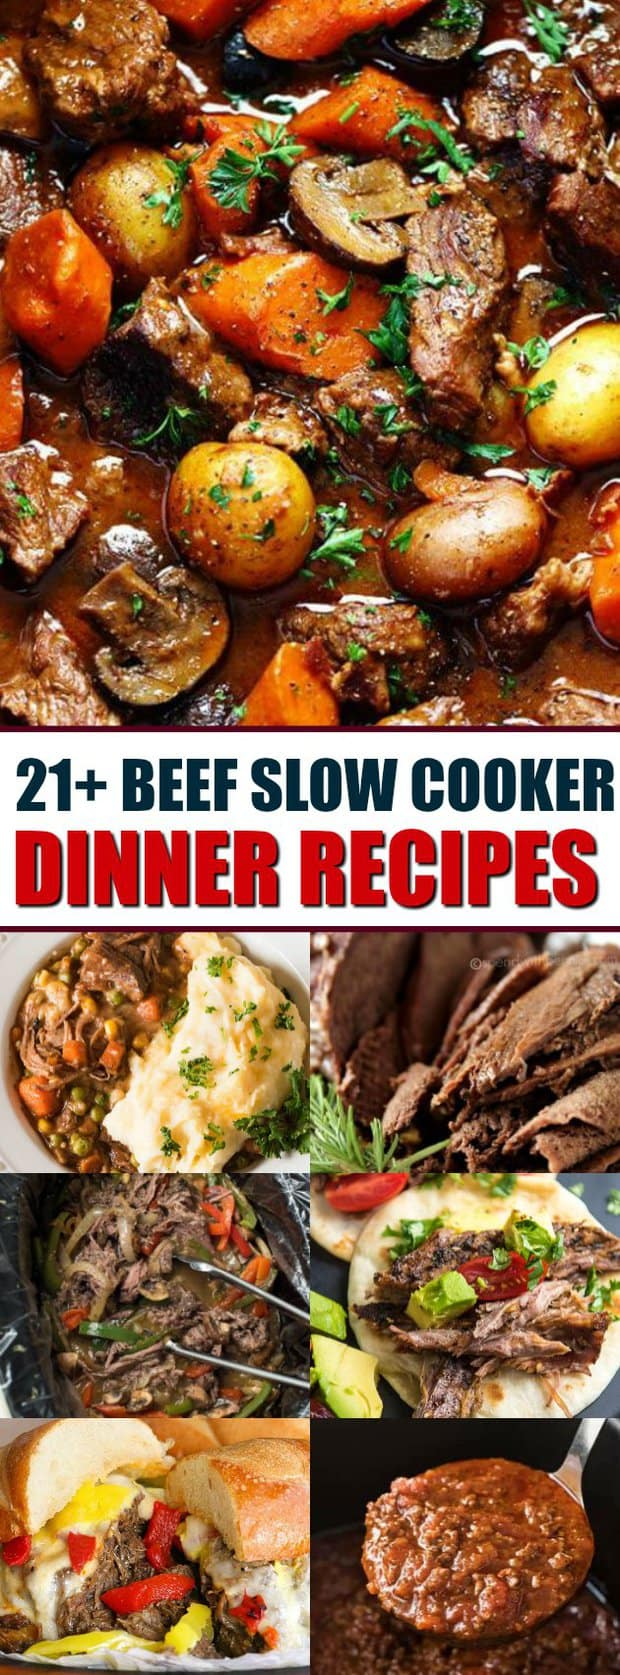 21+ Beef Slow Cooker Dinner Recipes